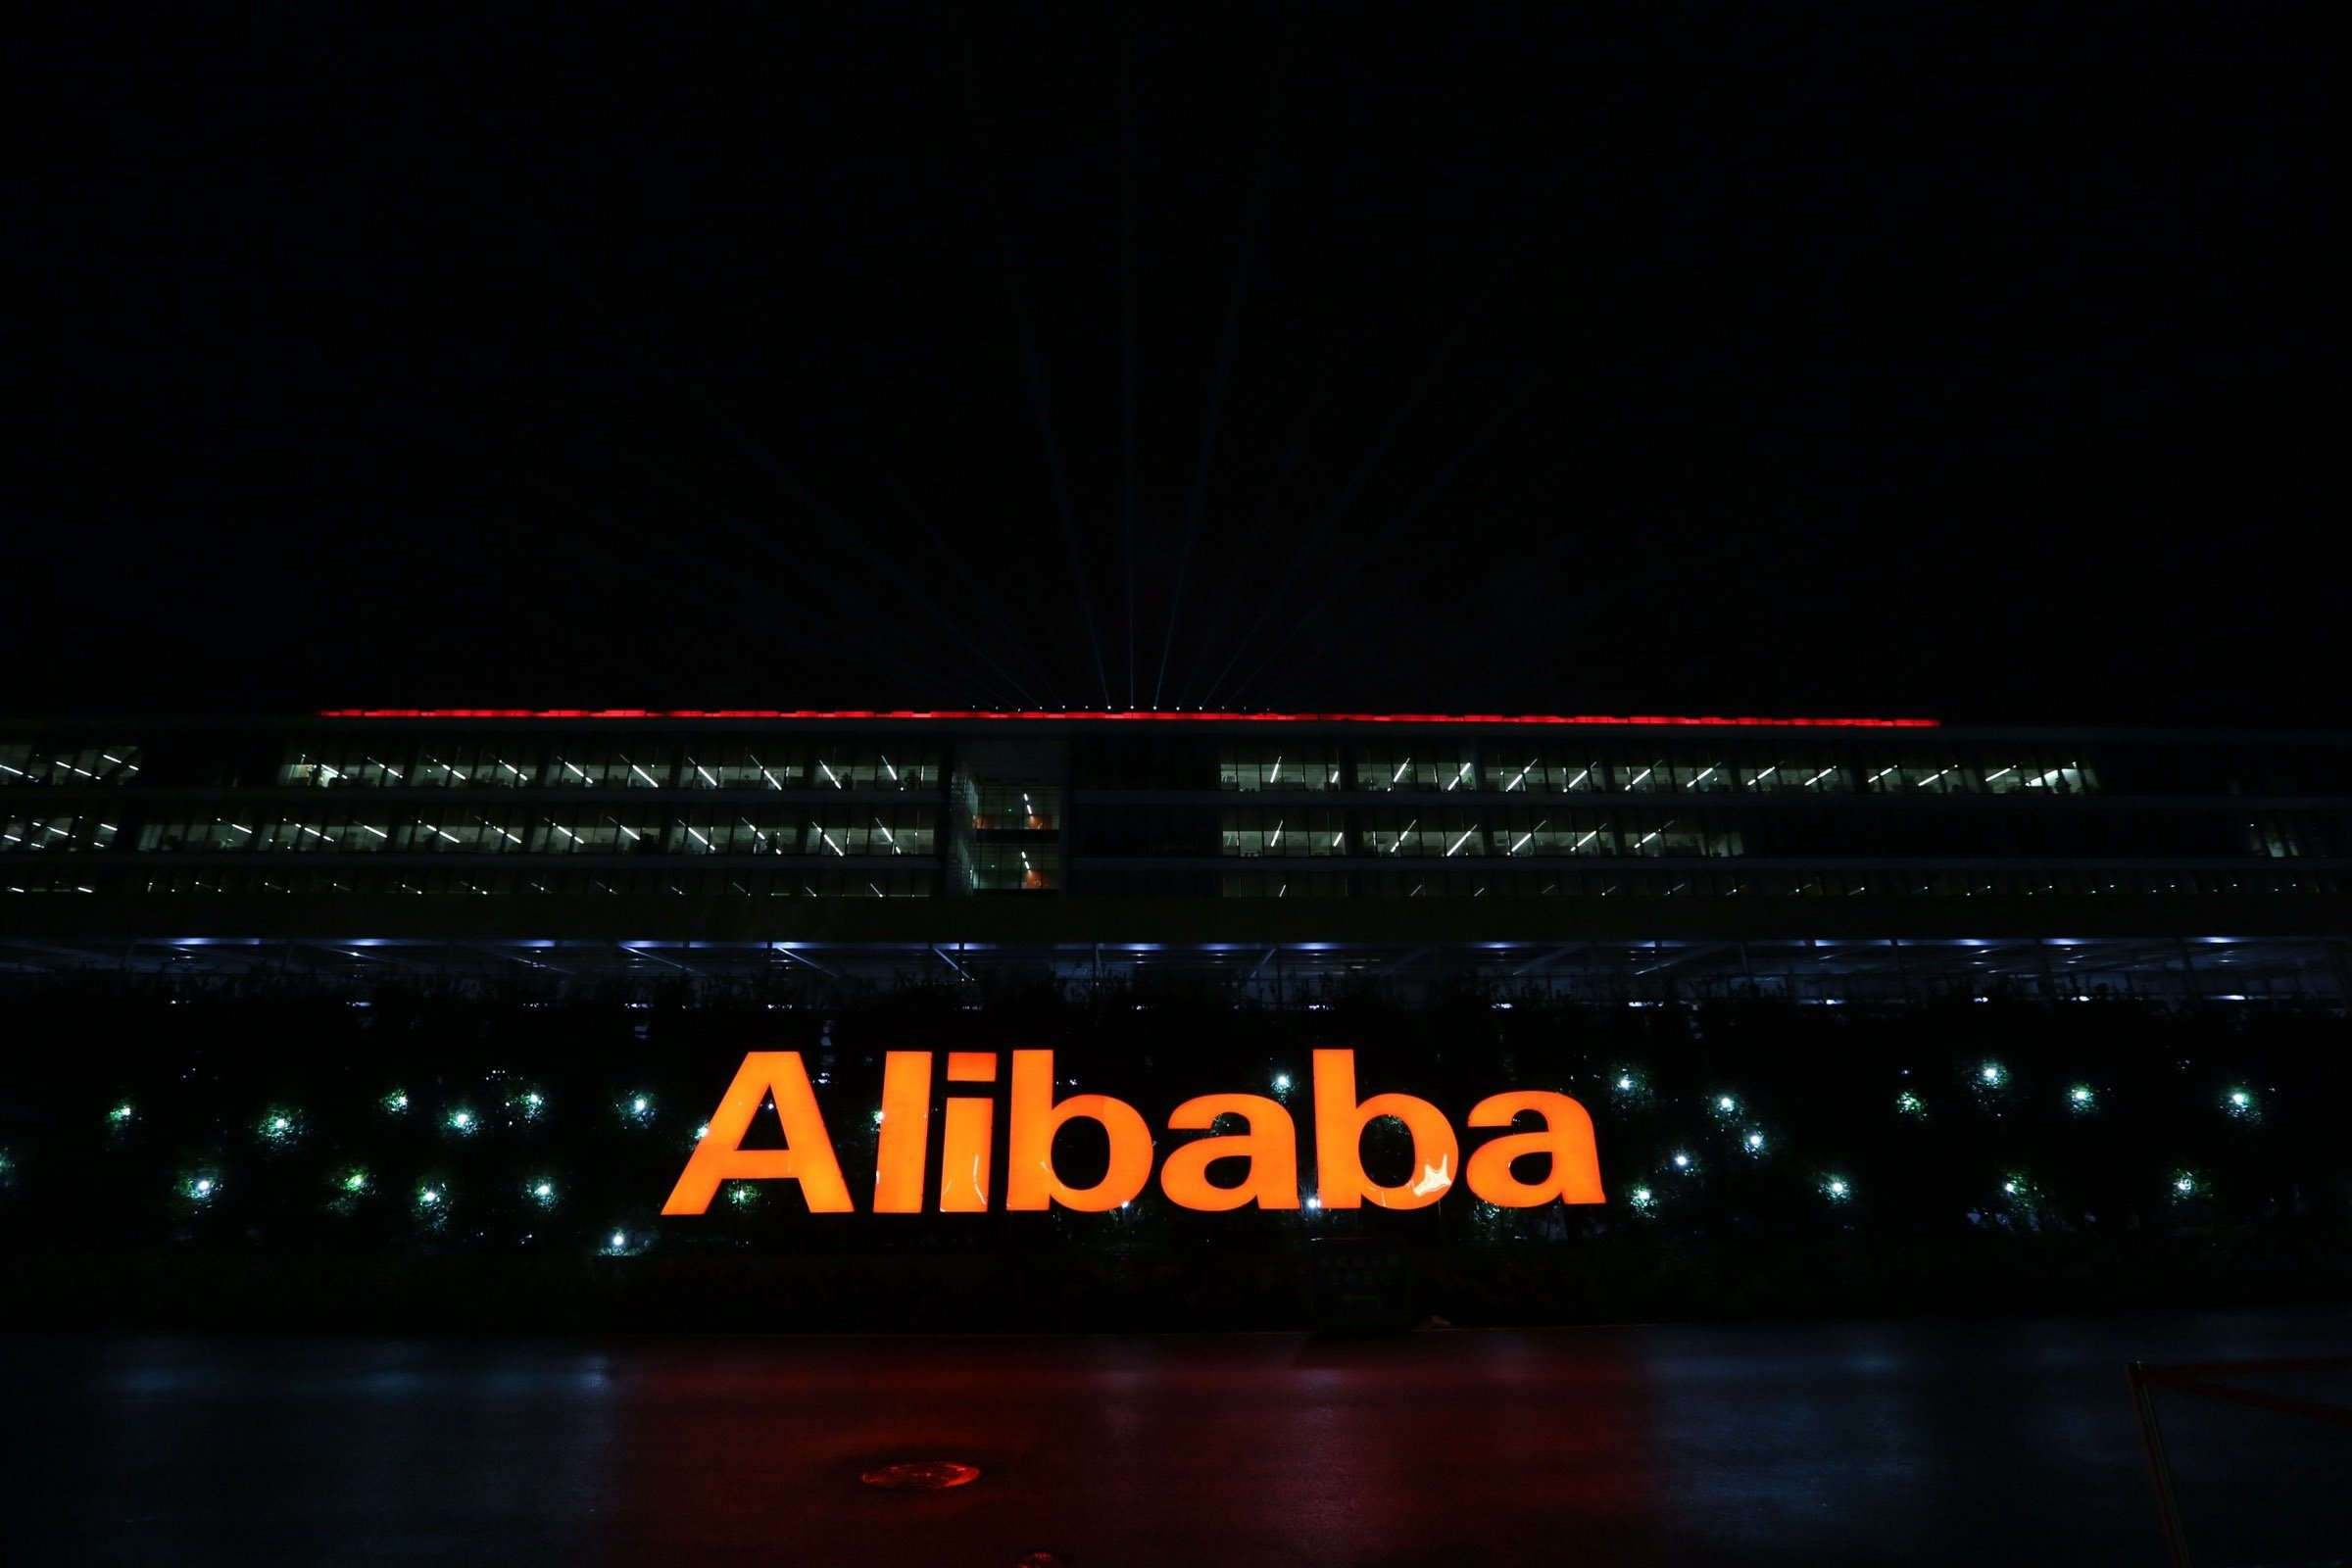 Alibaba Says It Smashed Sales Records On China's 'Singles Day'